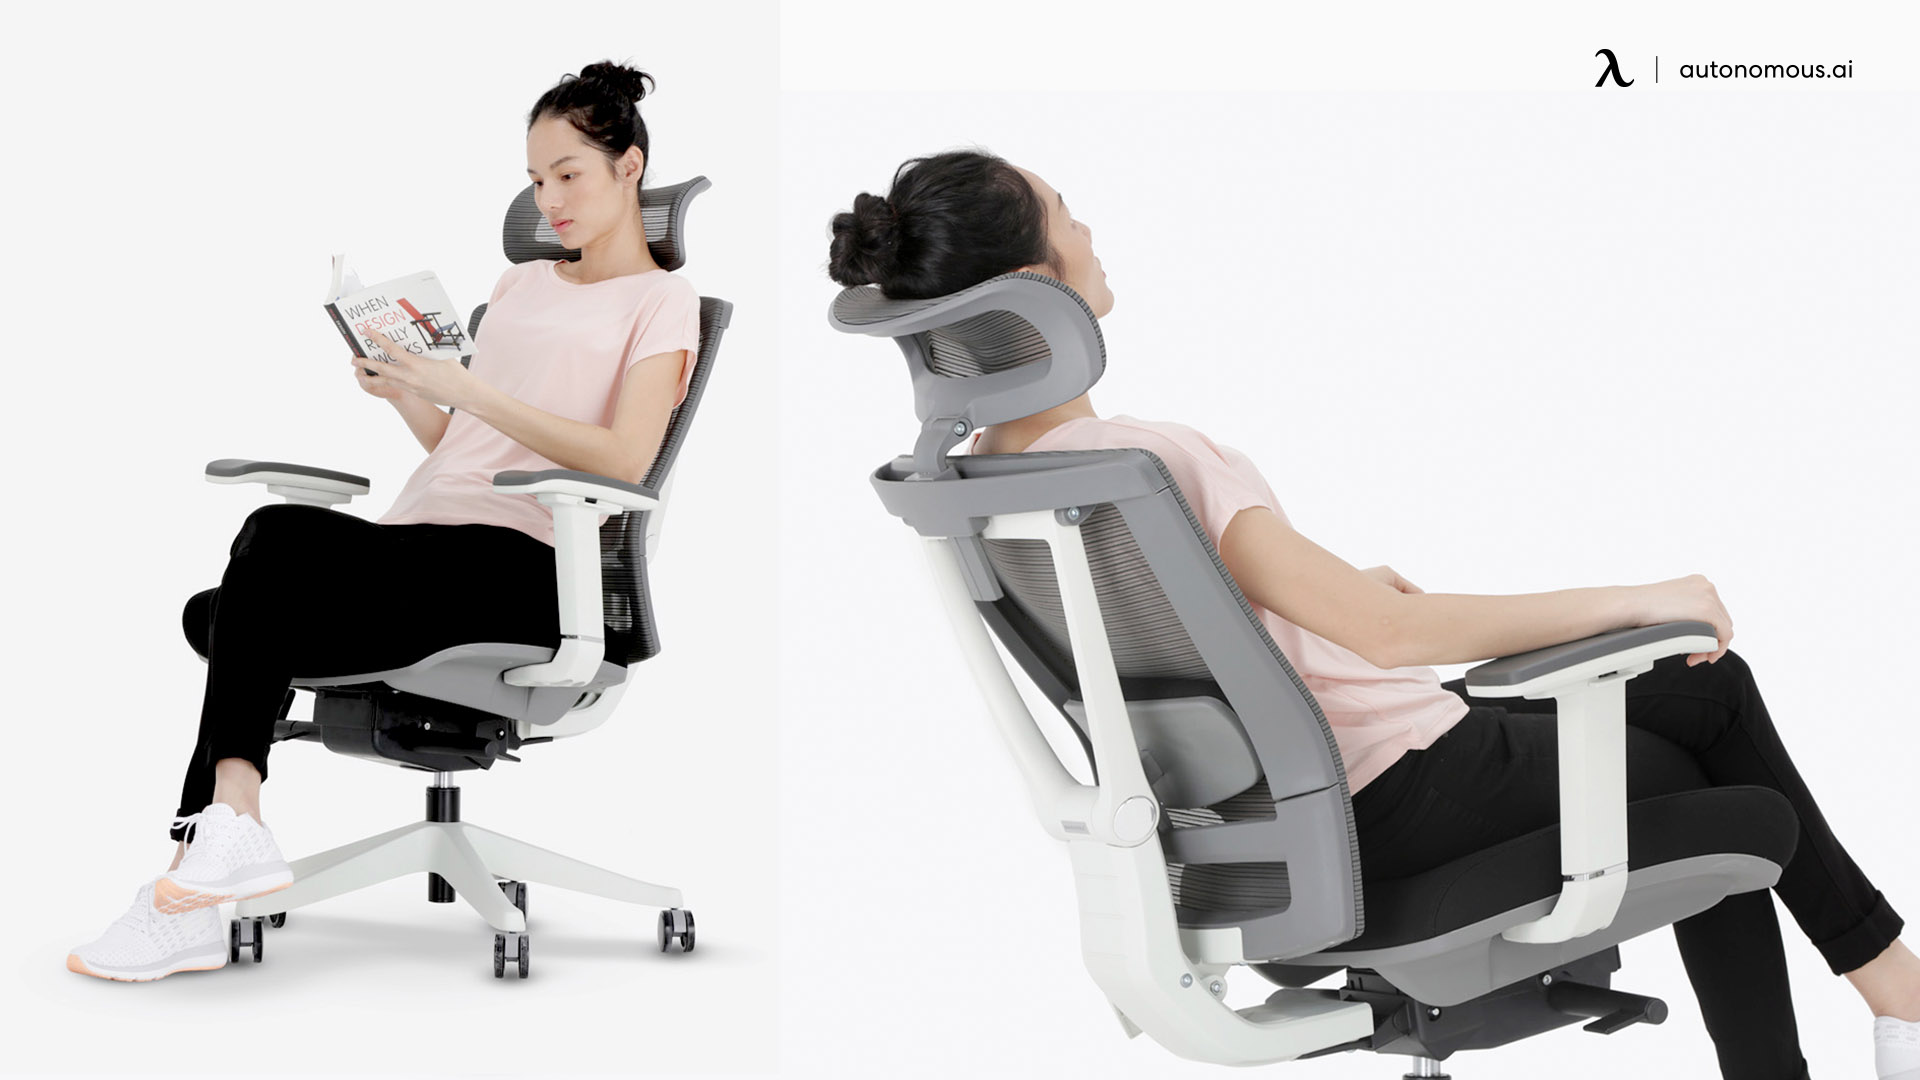 Buyers Guide For An Ergonomic Chair For Office Usage.